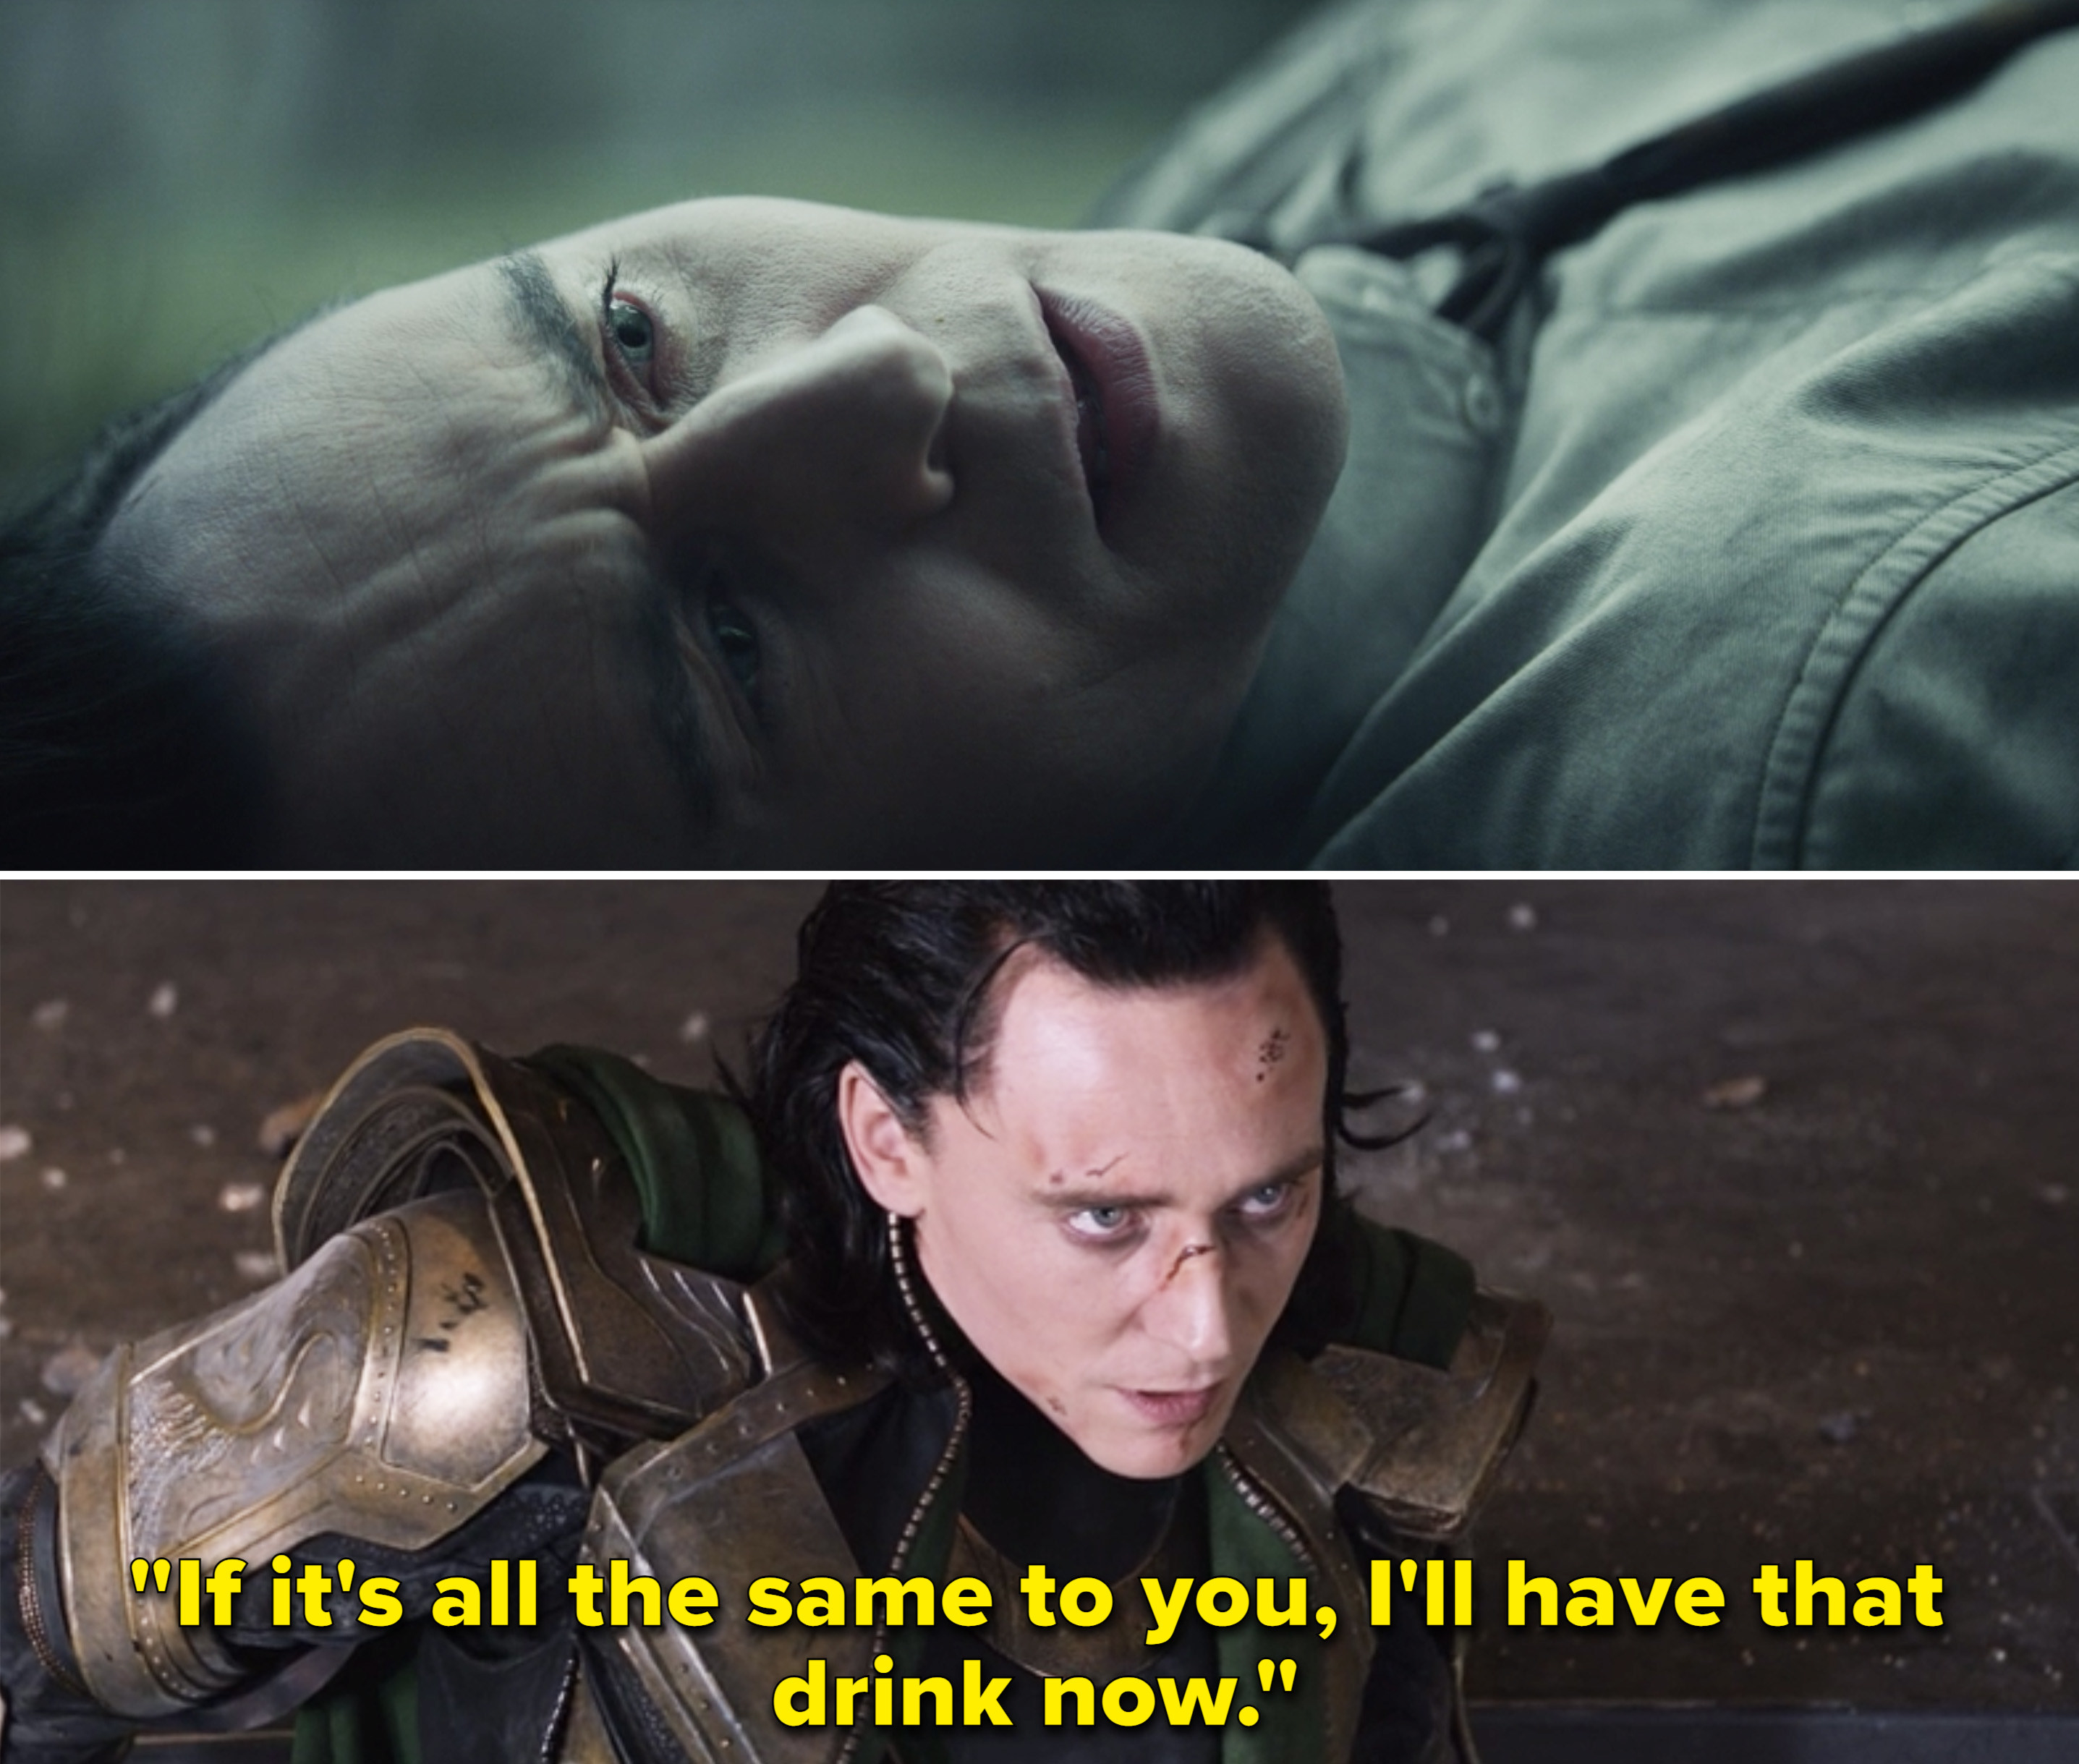 """Loki in The Avengers saying, """"If it's all the same to you, I'll have that drink now"""""""